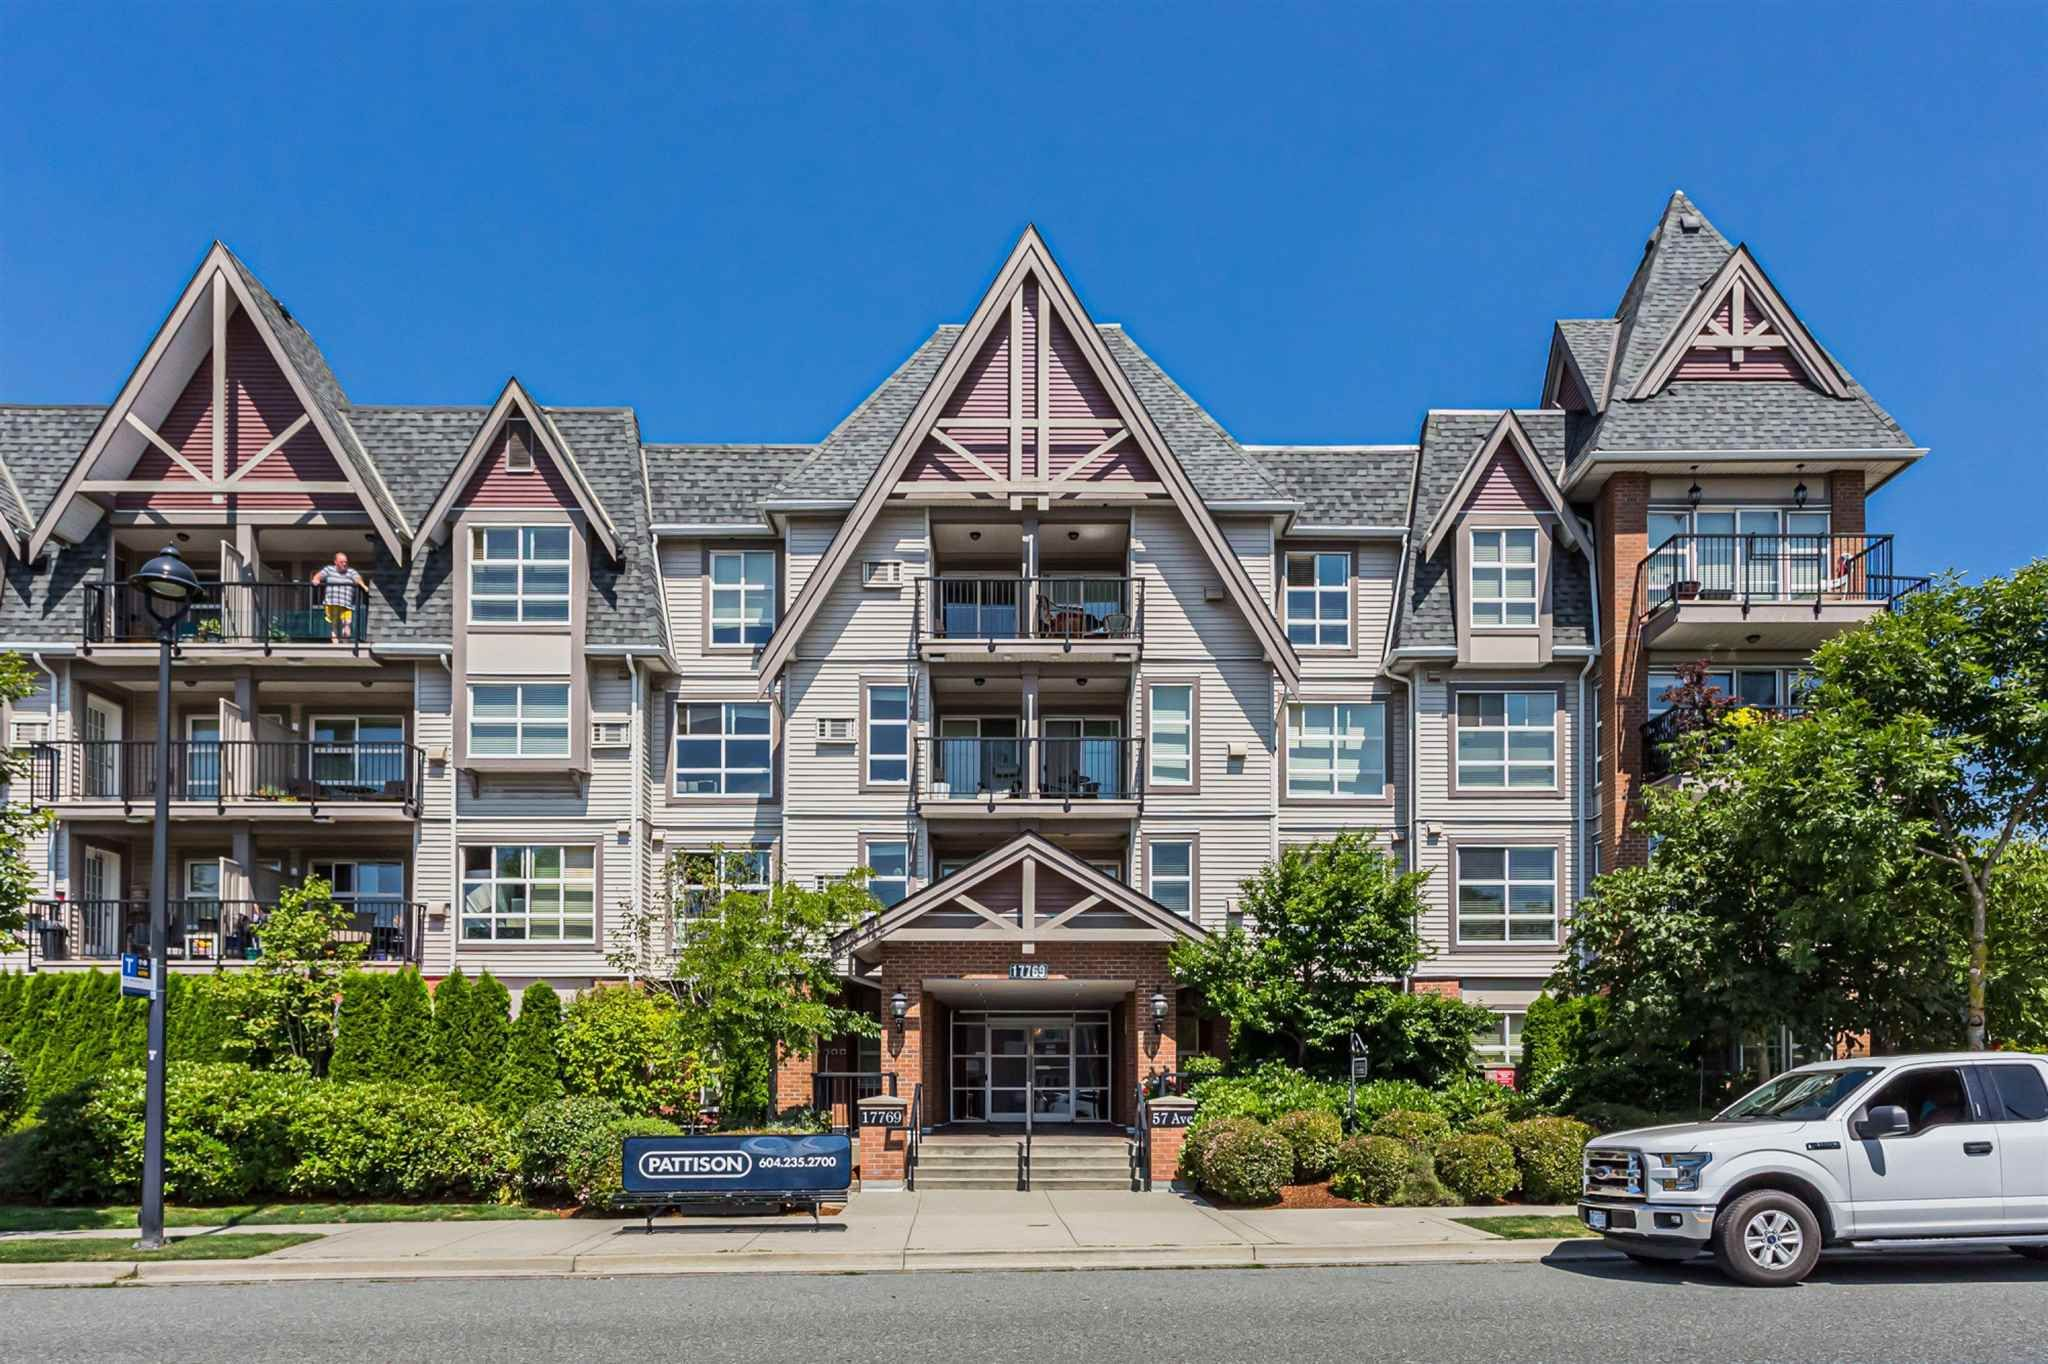 """Main Photo: 320 17769 57 Avenue in Surrey: Cloverdale BC Condo for sale in """"CLOVER DOWNS ESTATES"""" (Cloverdale)  : MLS®# R2604381"""